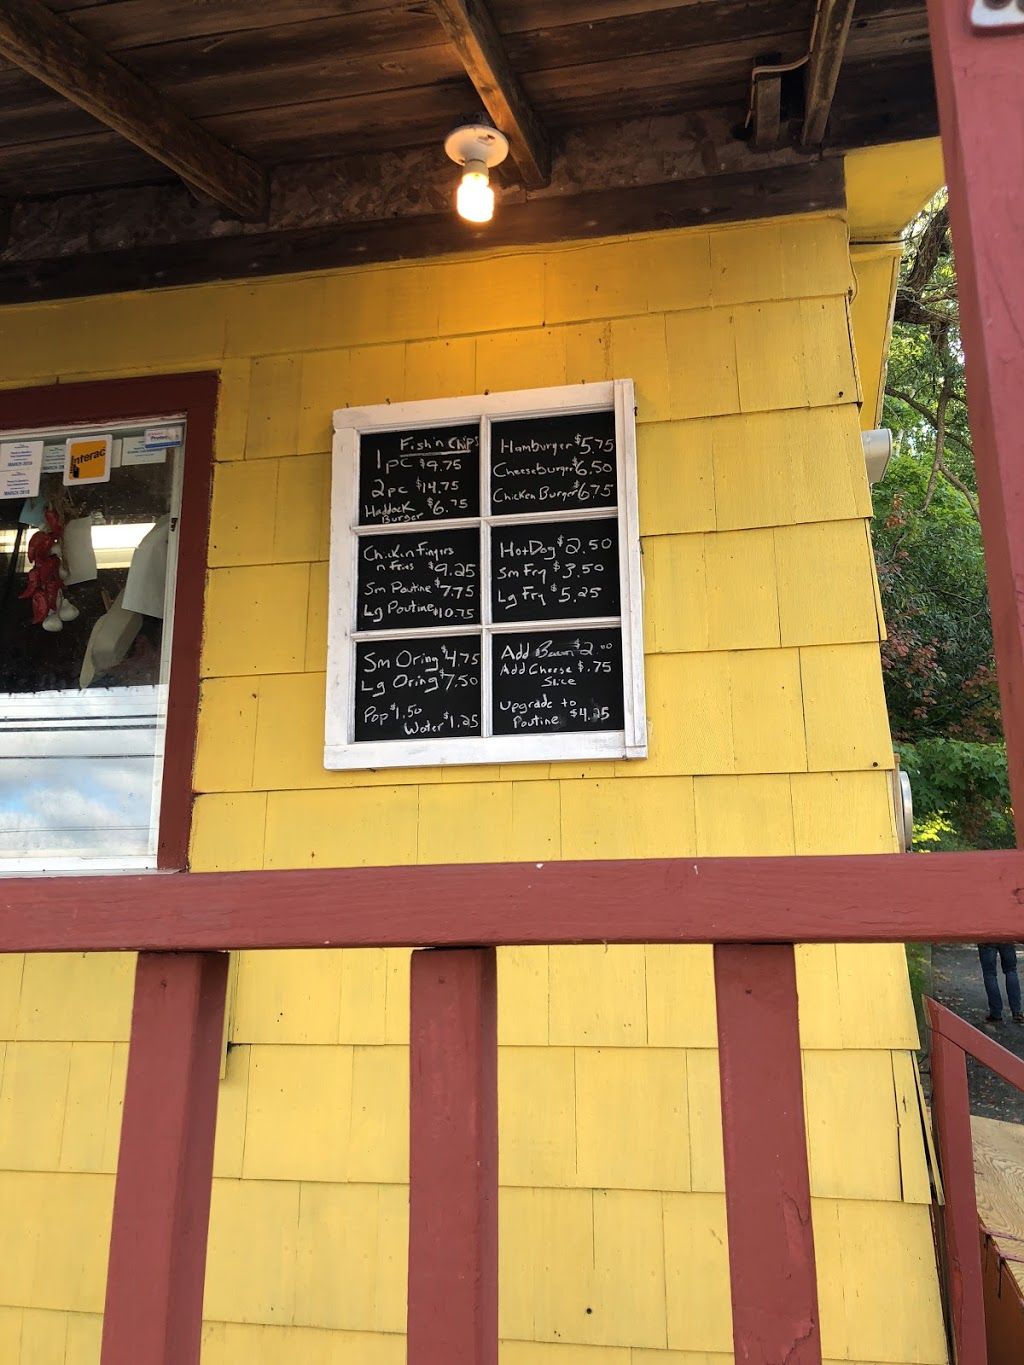 Hennigars Country Cookhouse   restaurant   10272 Nova Scotia Trunk 1, Wolfville, NS B4P 2R2, Canada   9025427998 OR +1 902-542-7998